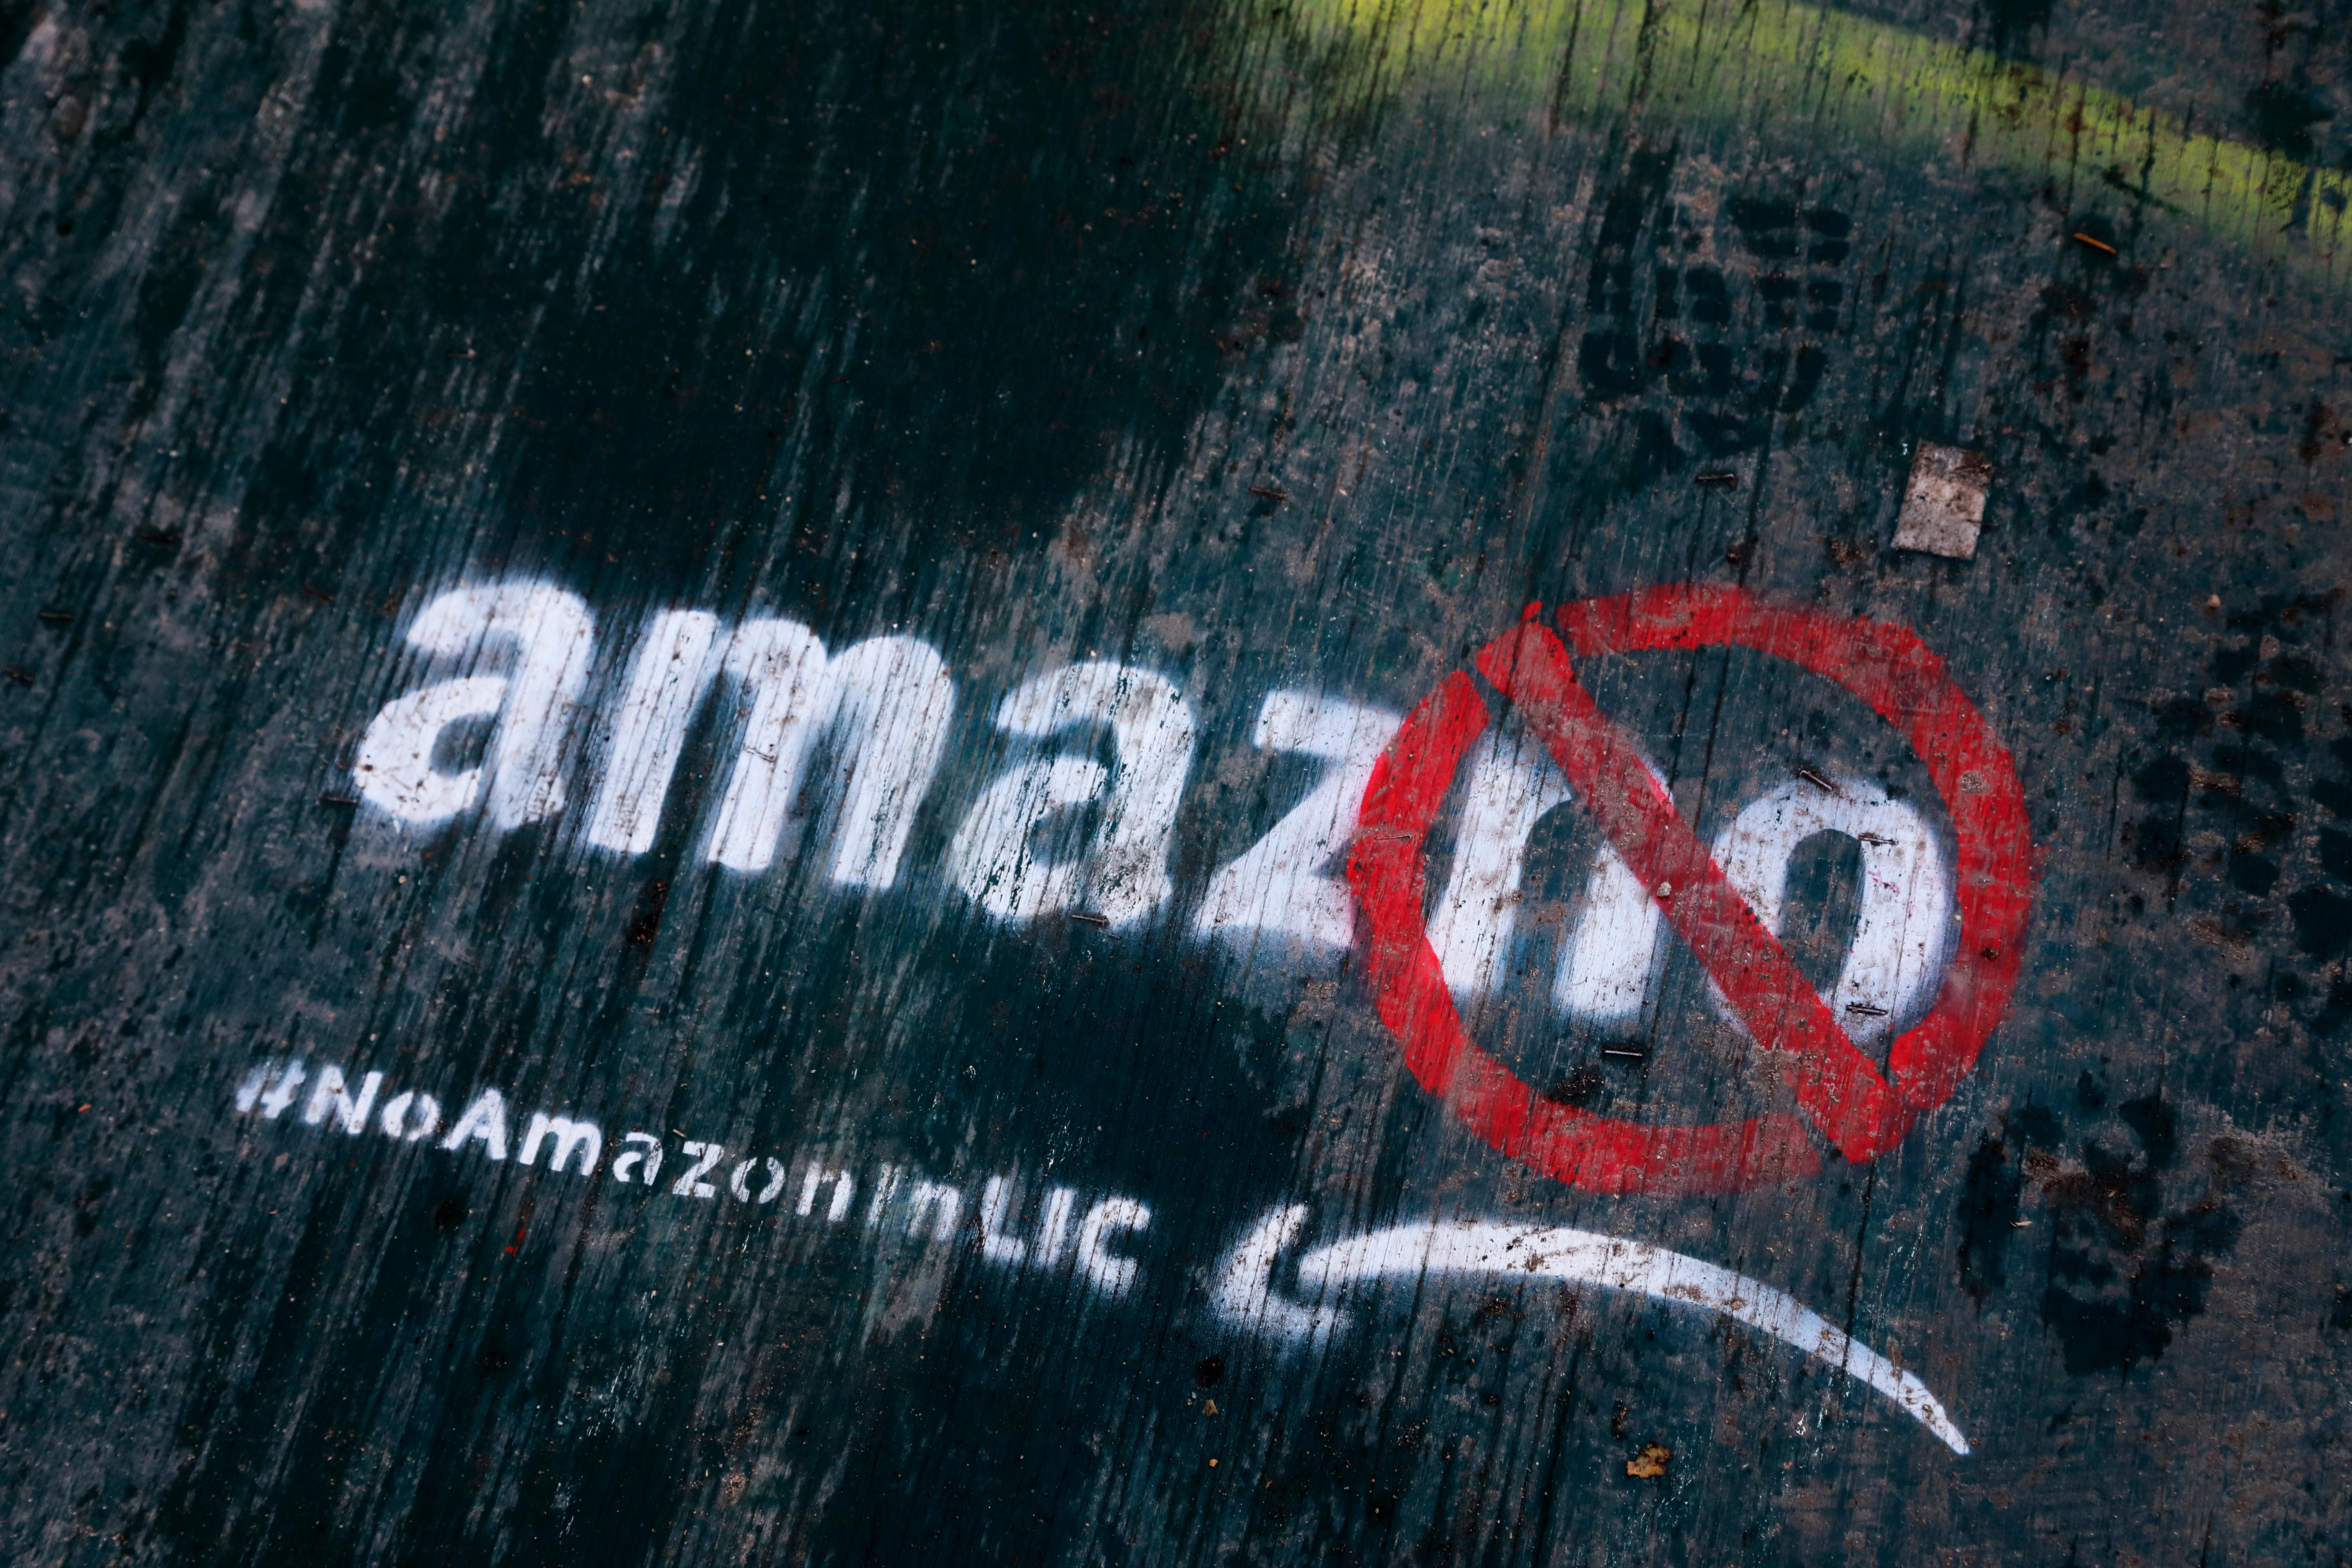 FILE- In this Nov. 16, 2018, file photo graffiti has been painted on a sidewalk by someone opposed to the location of an Amazon headquarters in the Long Island City neighborhood in the Queens borough of New York. Amazon said Thursday, Feb. 14, 2019, that it is dropping New York City as one of its new headquarter locations. (AP Photo/Mark Lennihan, File)